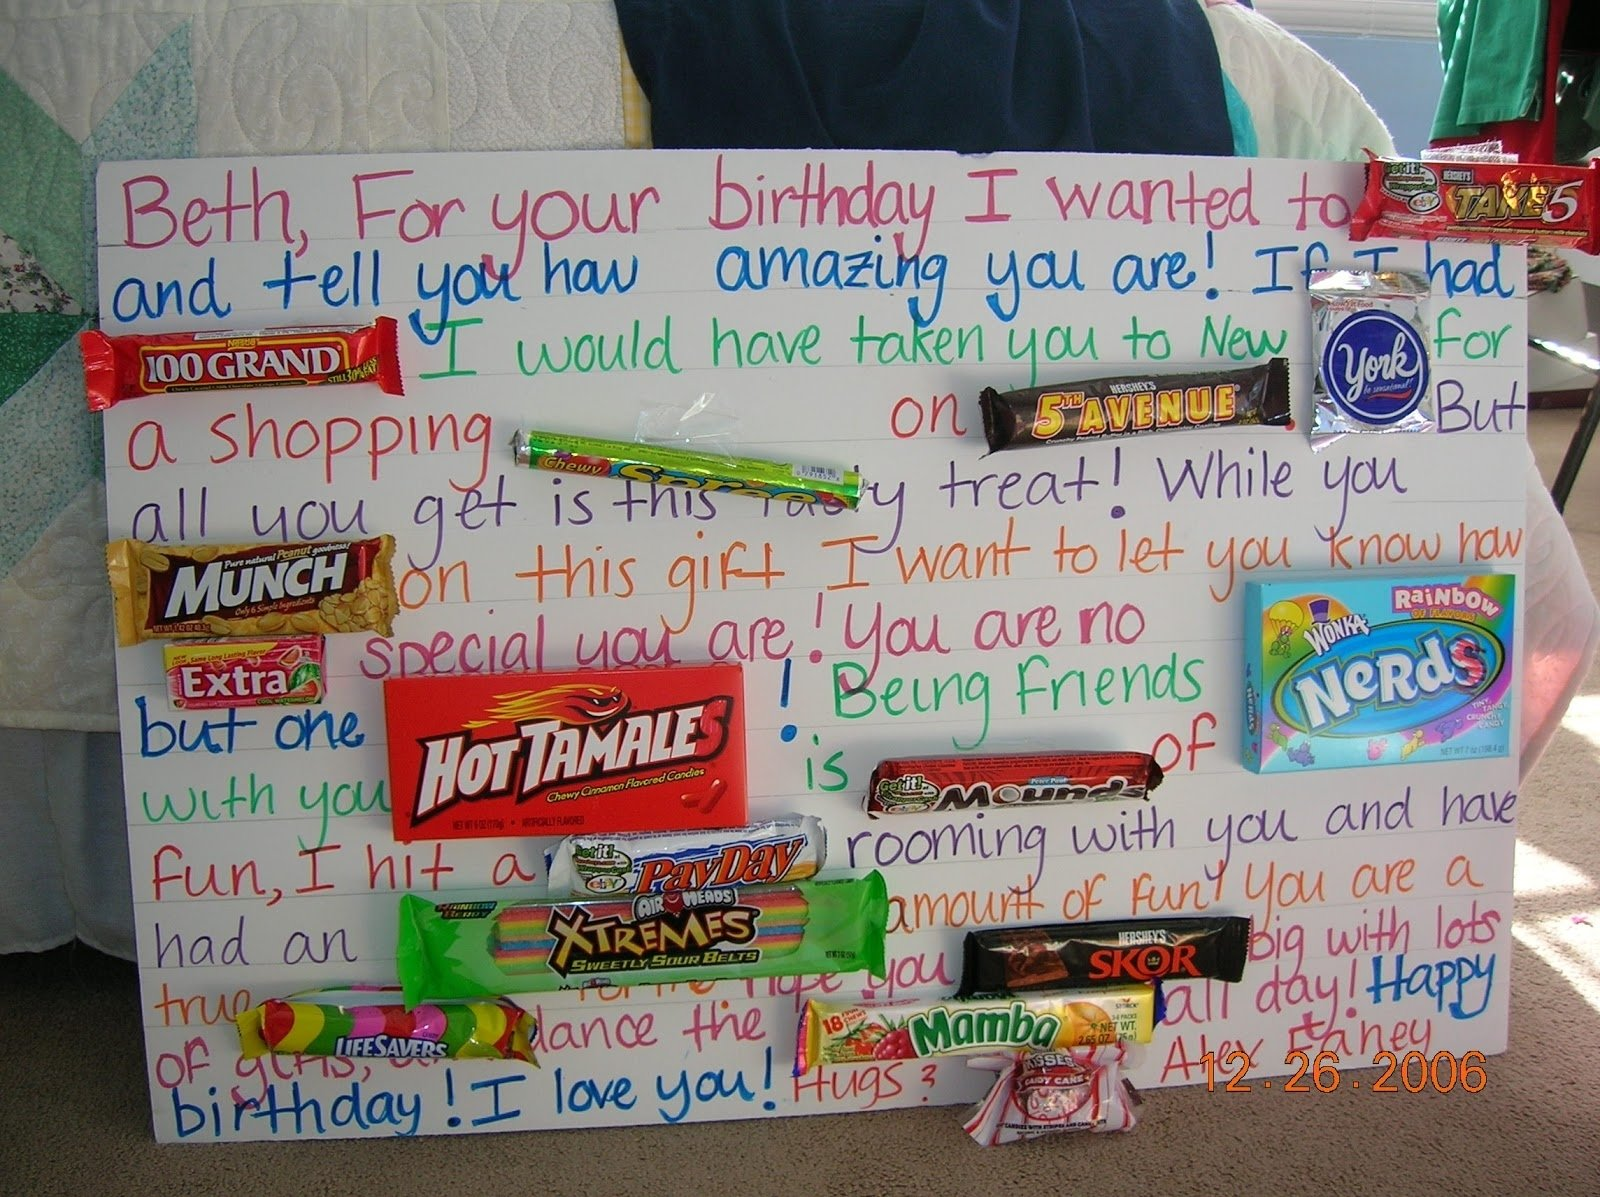 10 amazing good gift ideas for your girlfriend good christmas gift for a guy you just